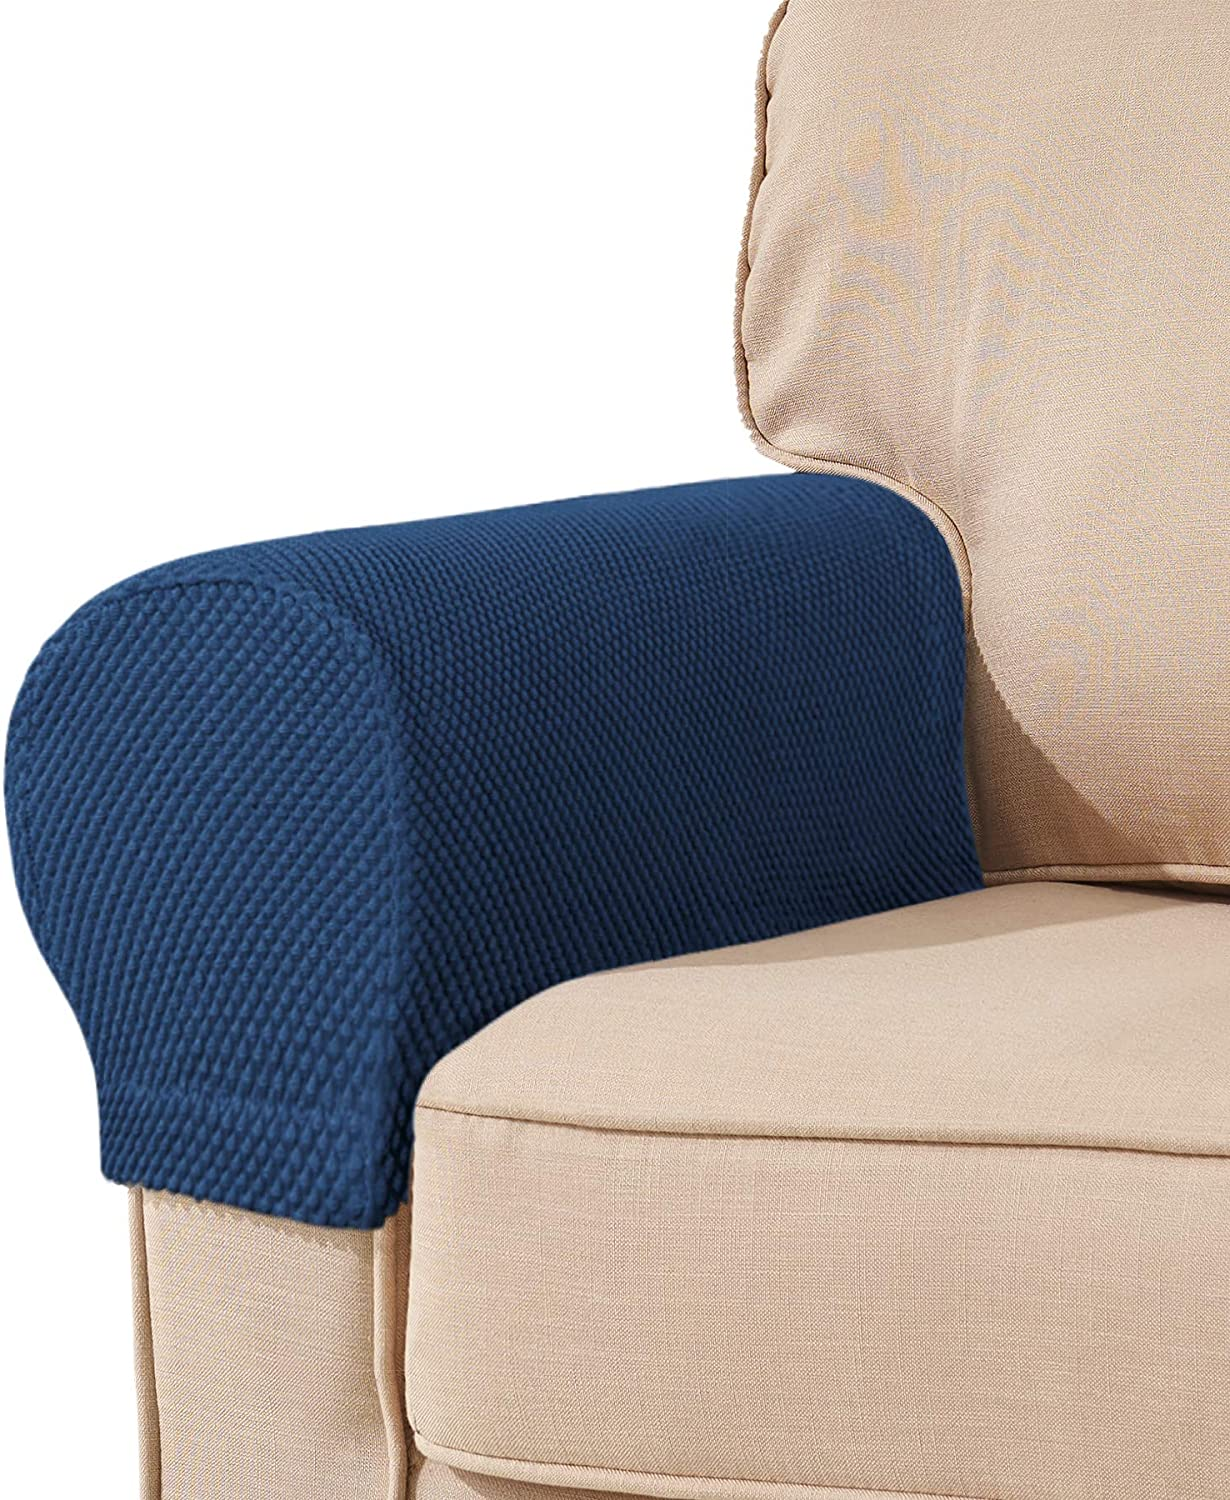 subrtex Spandex Stretch Fabric Armrest Covers Anti-Slip Furniture Protector Armchair Slipcovers for Recliner Sofa Set of 2 (Navy)